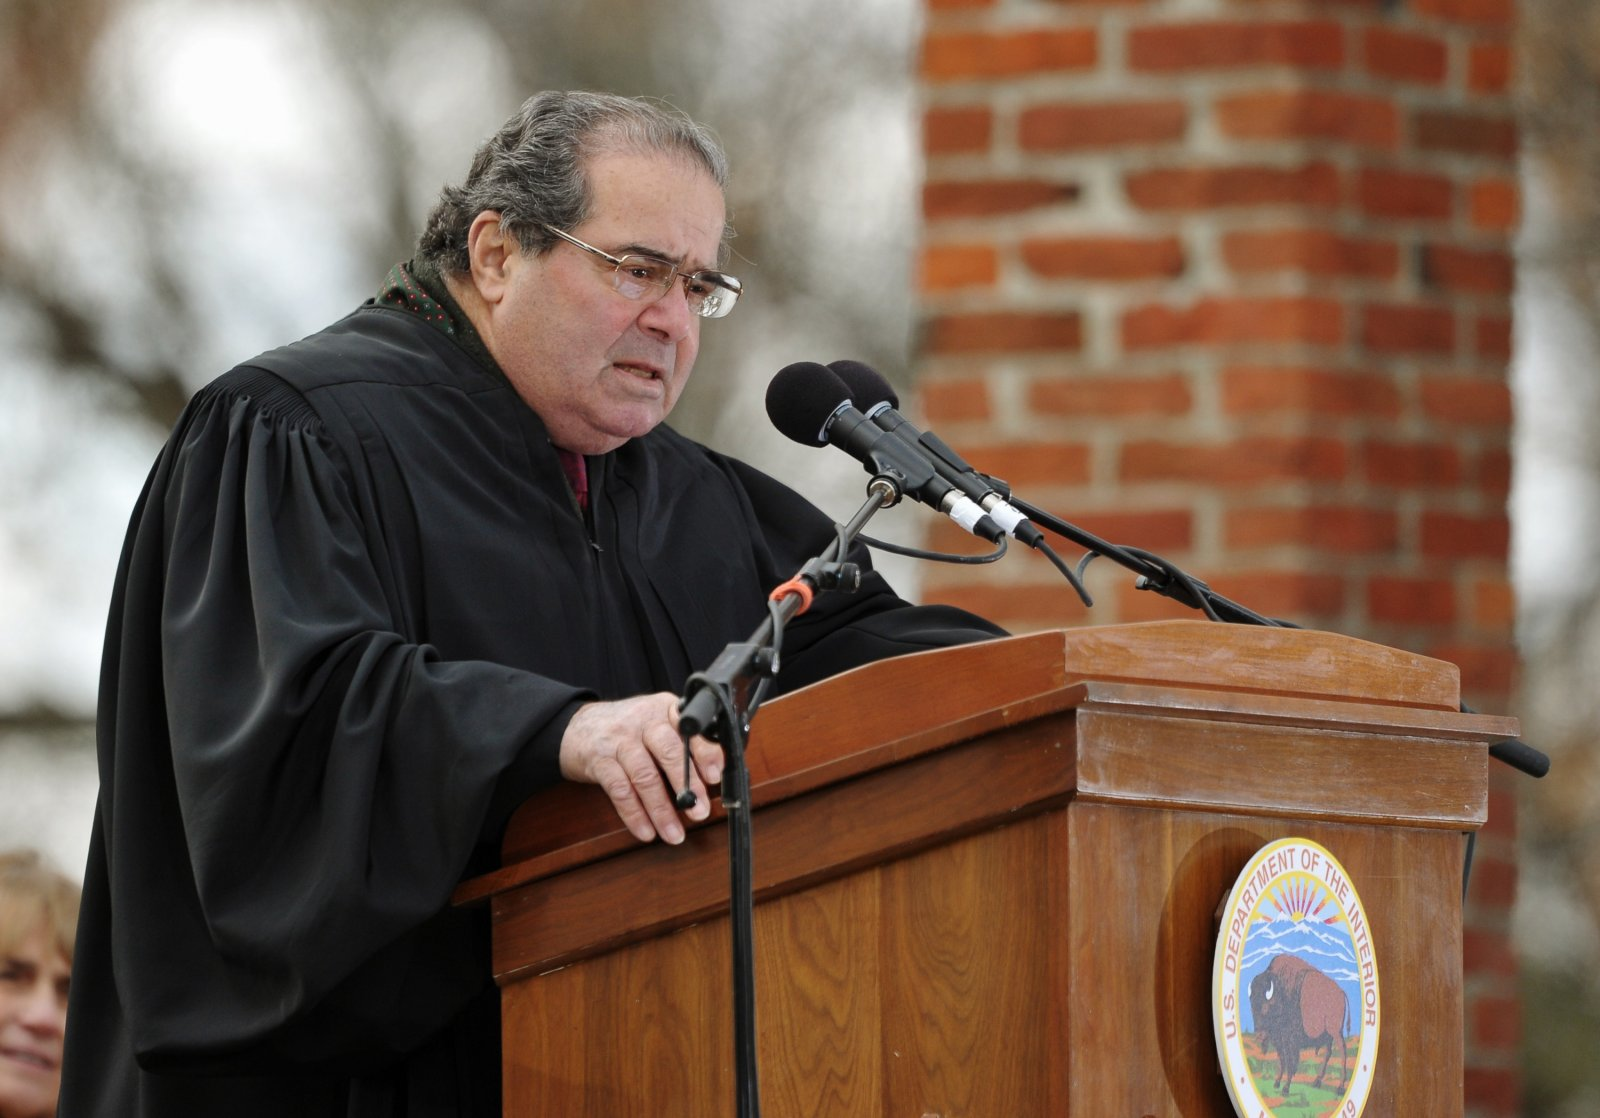 Supreme Court Justice Antonin Scalia speaking at an event commemorating the Gettysburg Address in 2013